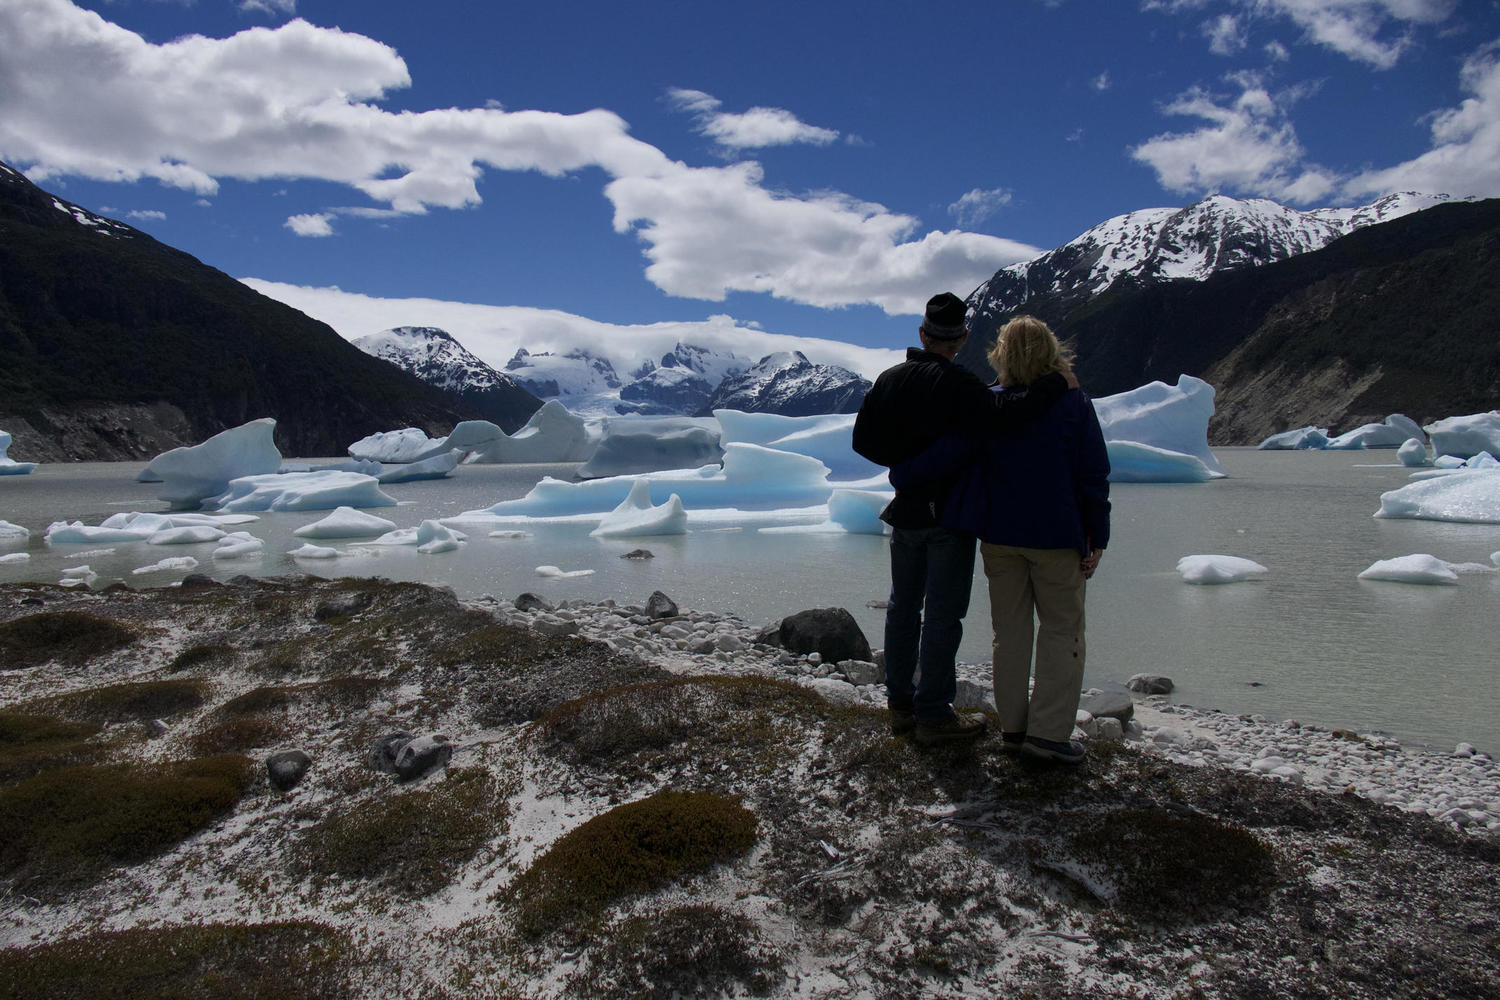 Looking out over the Neff Glacier, part of the Patagonian Icefields.